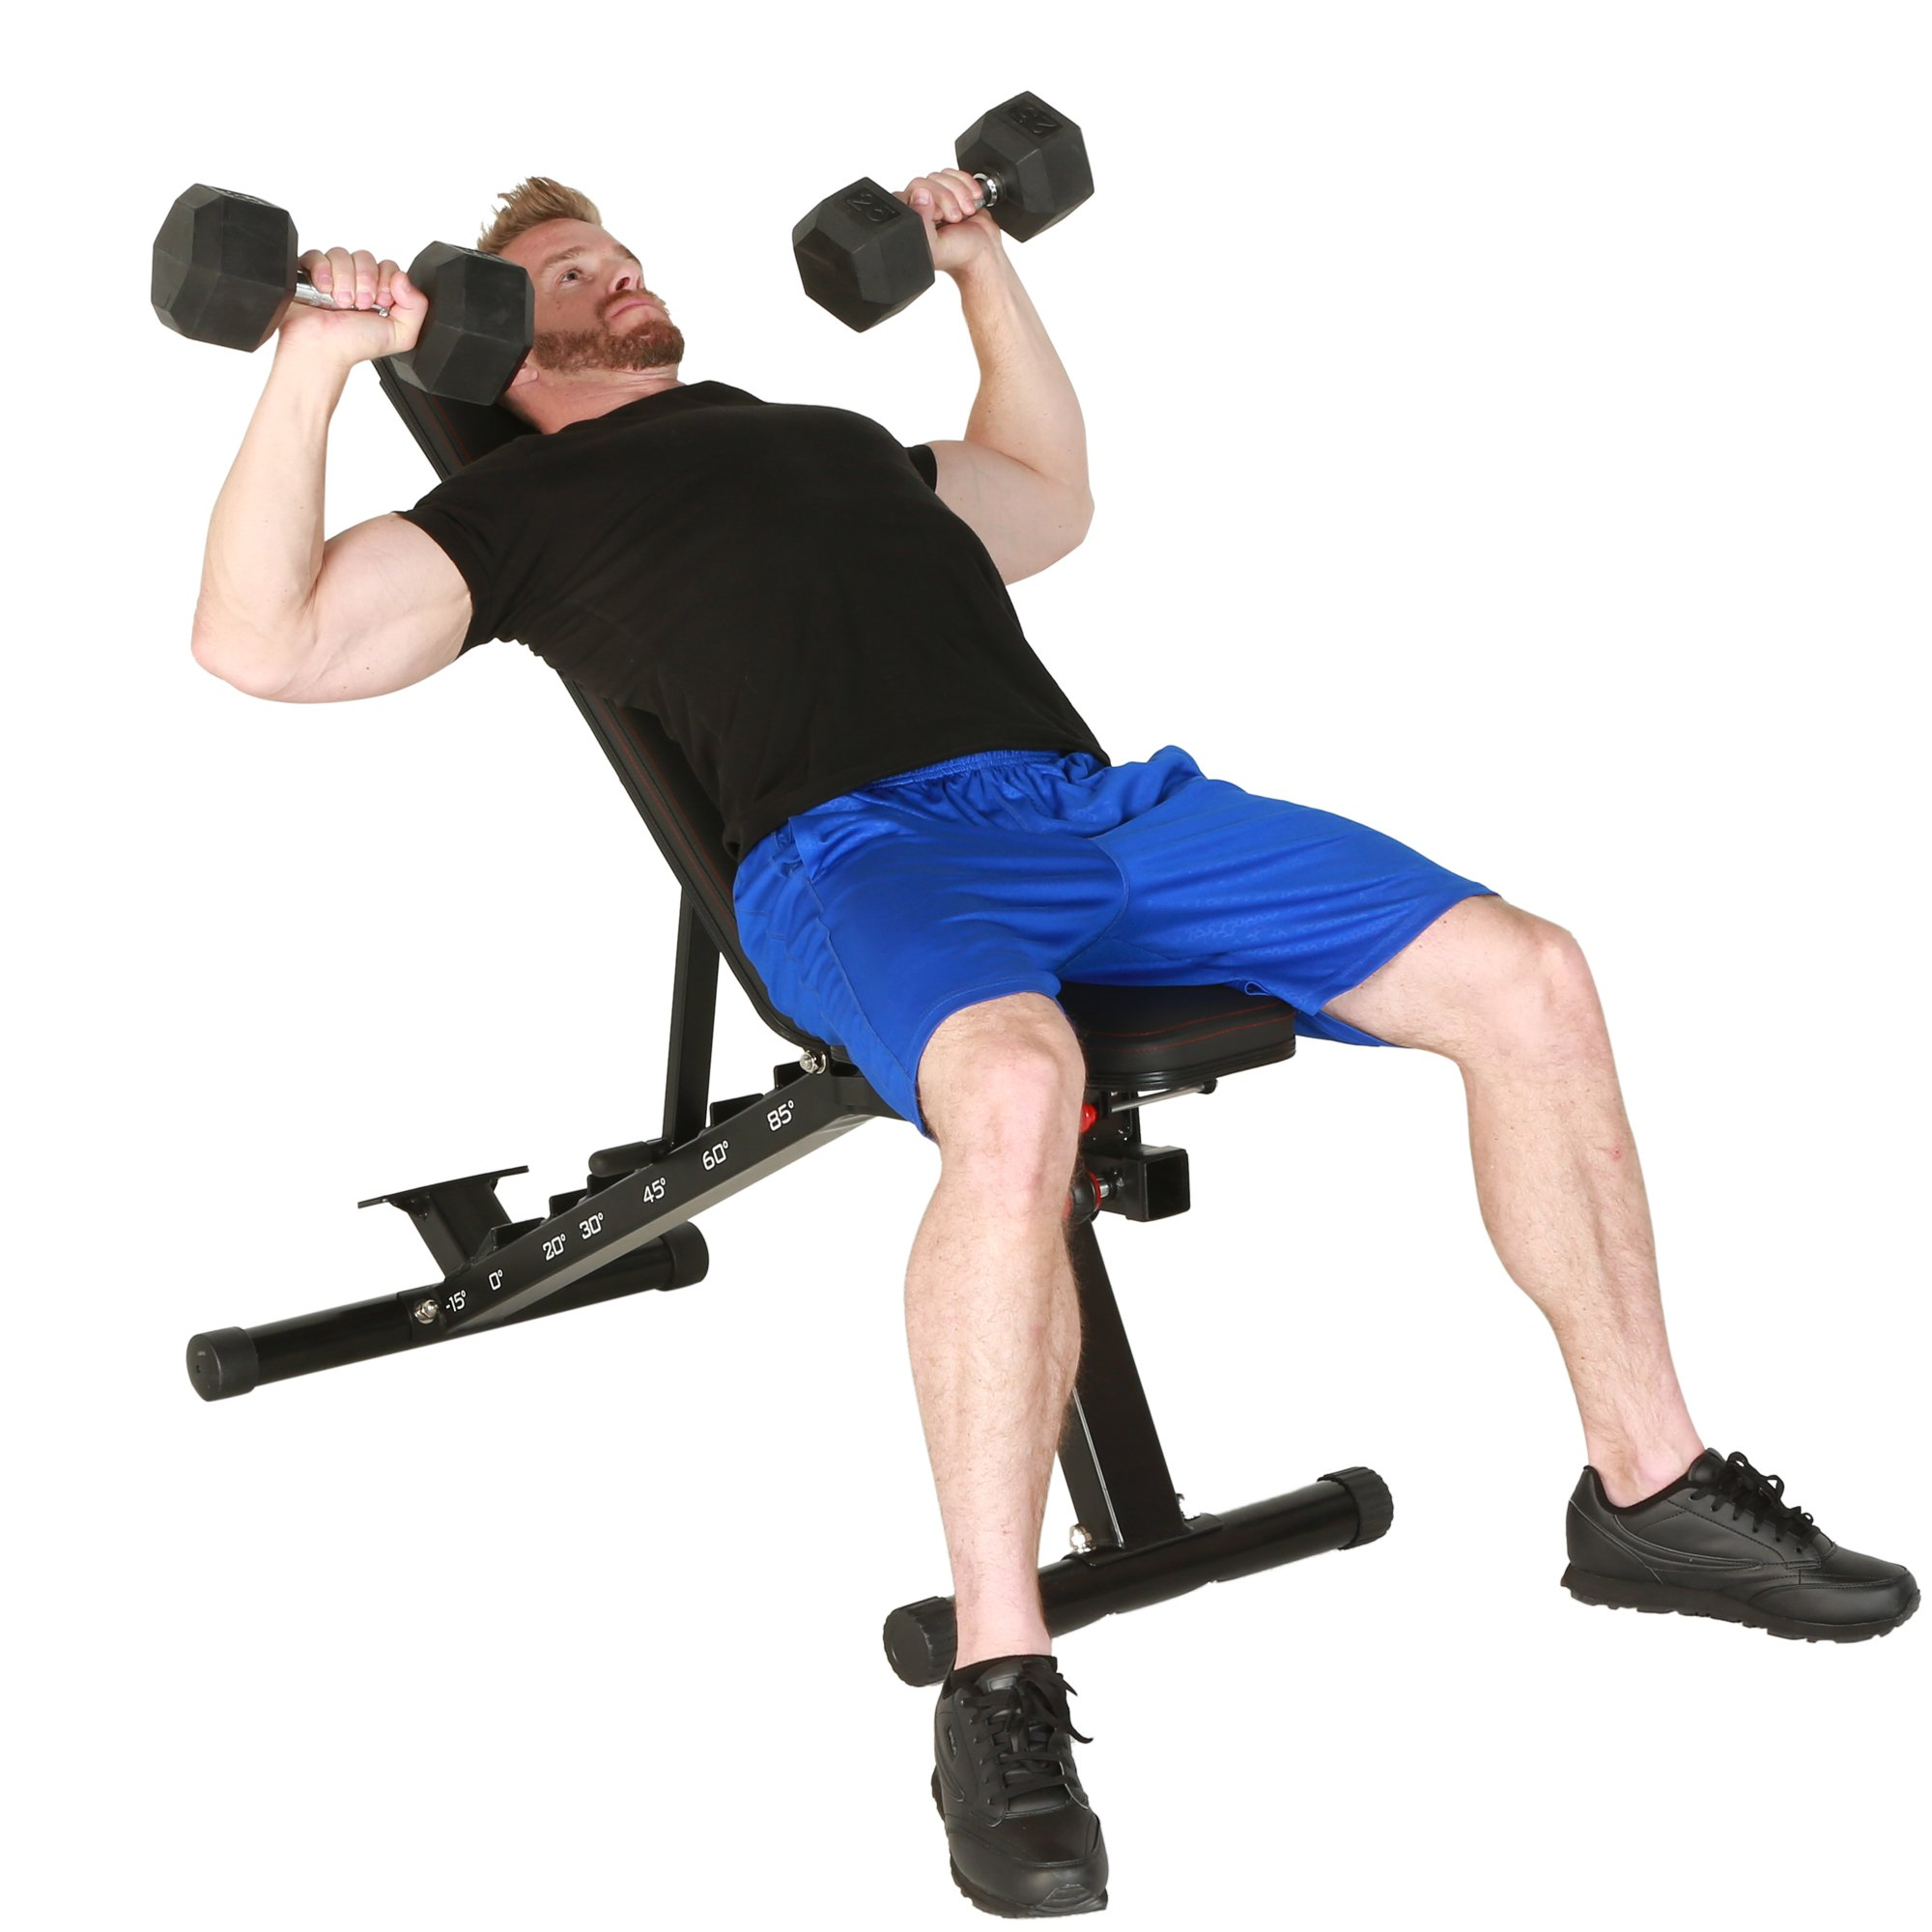 Fitness Reality 2000 Super Max XL High Capacity NO Gap Weight Bench with Detachable Leg Lock-Down by Fitness Reality (Image #5)